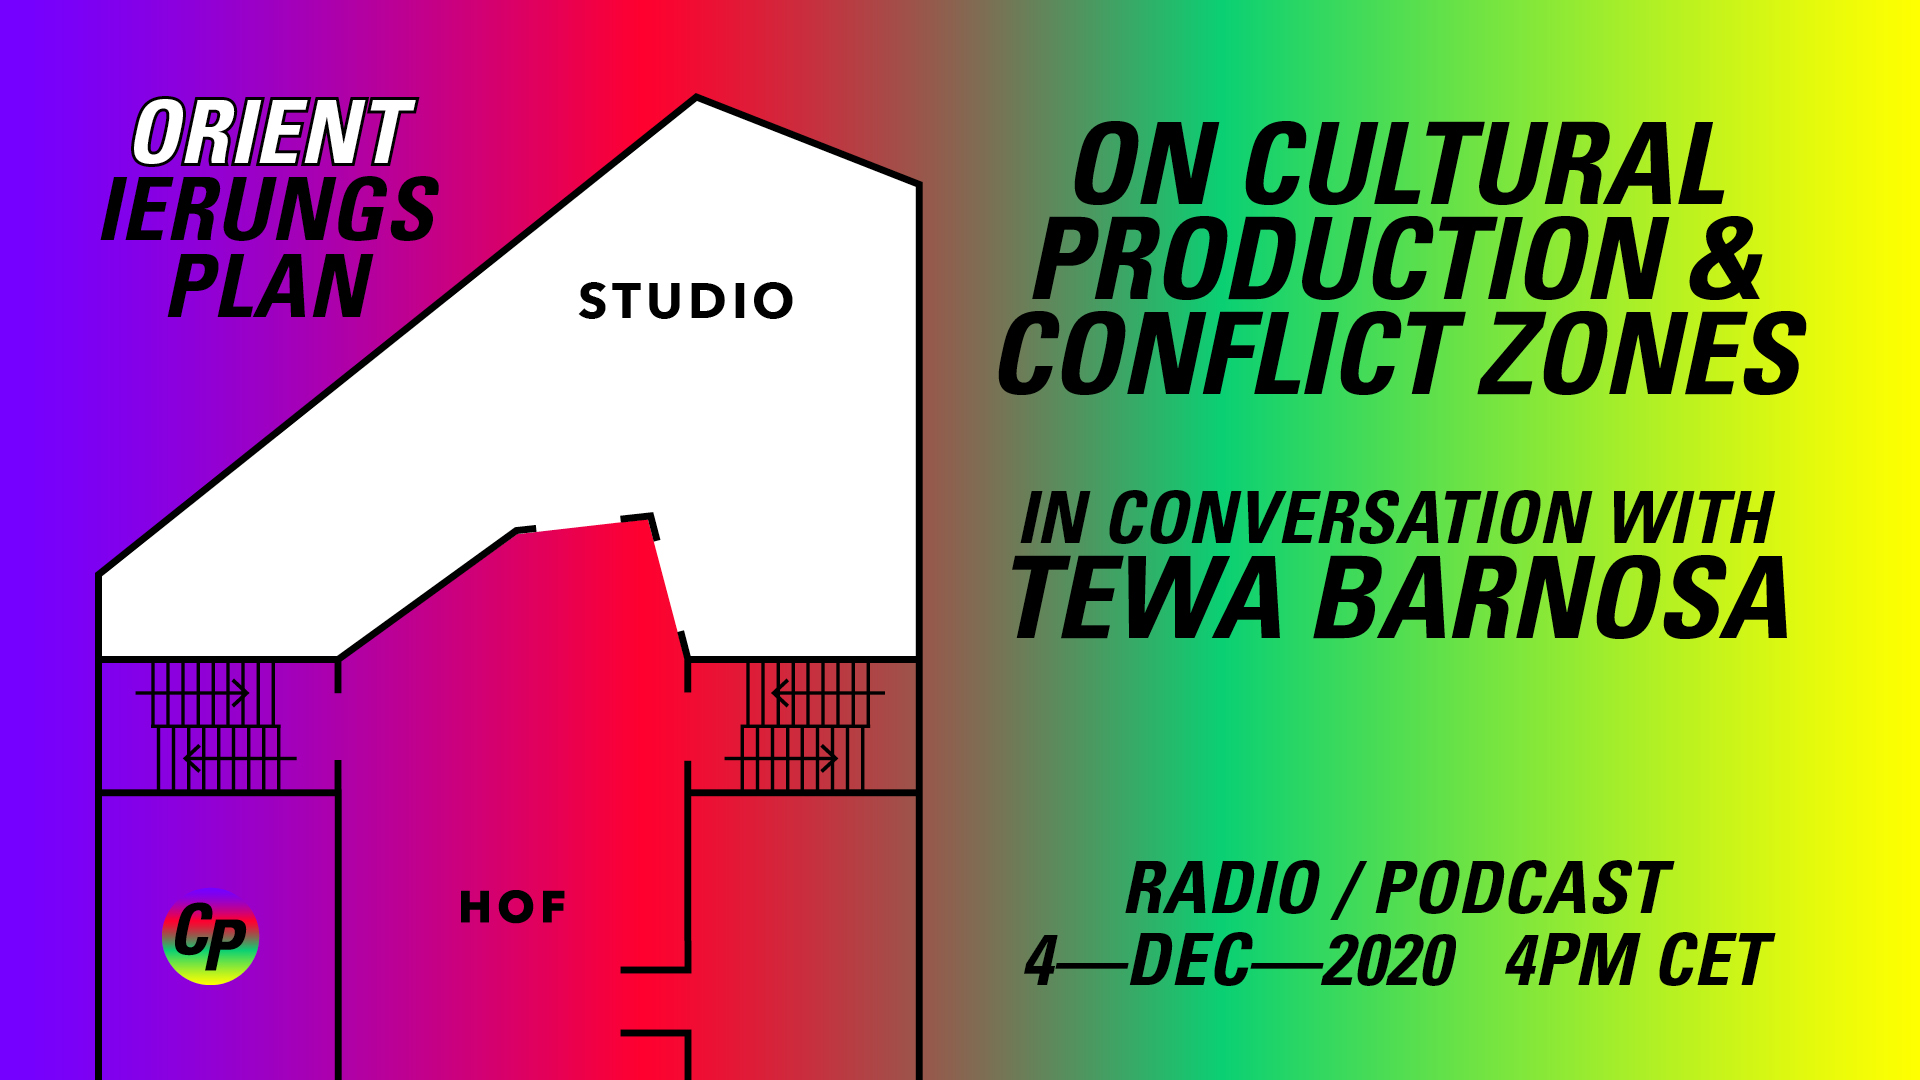 ORIENTierungsplan Episode #4: On Cultural Production & Conflict Zones – in conversation with Tewa Barnosa.